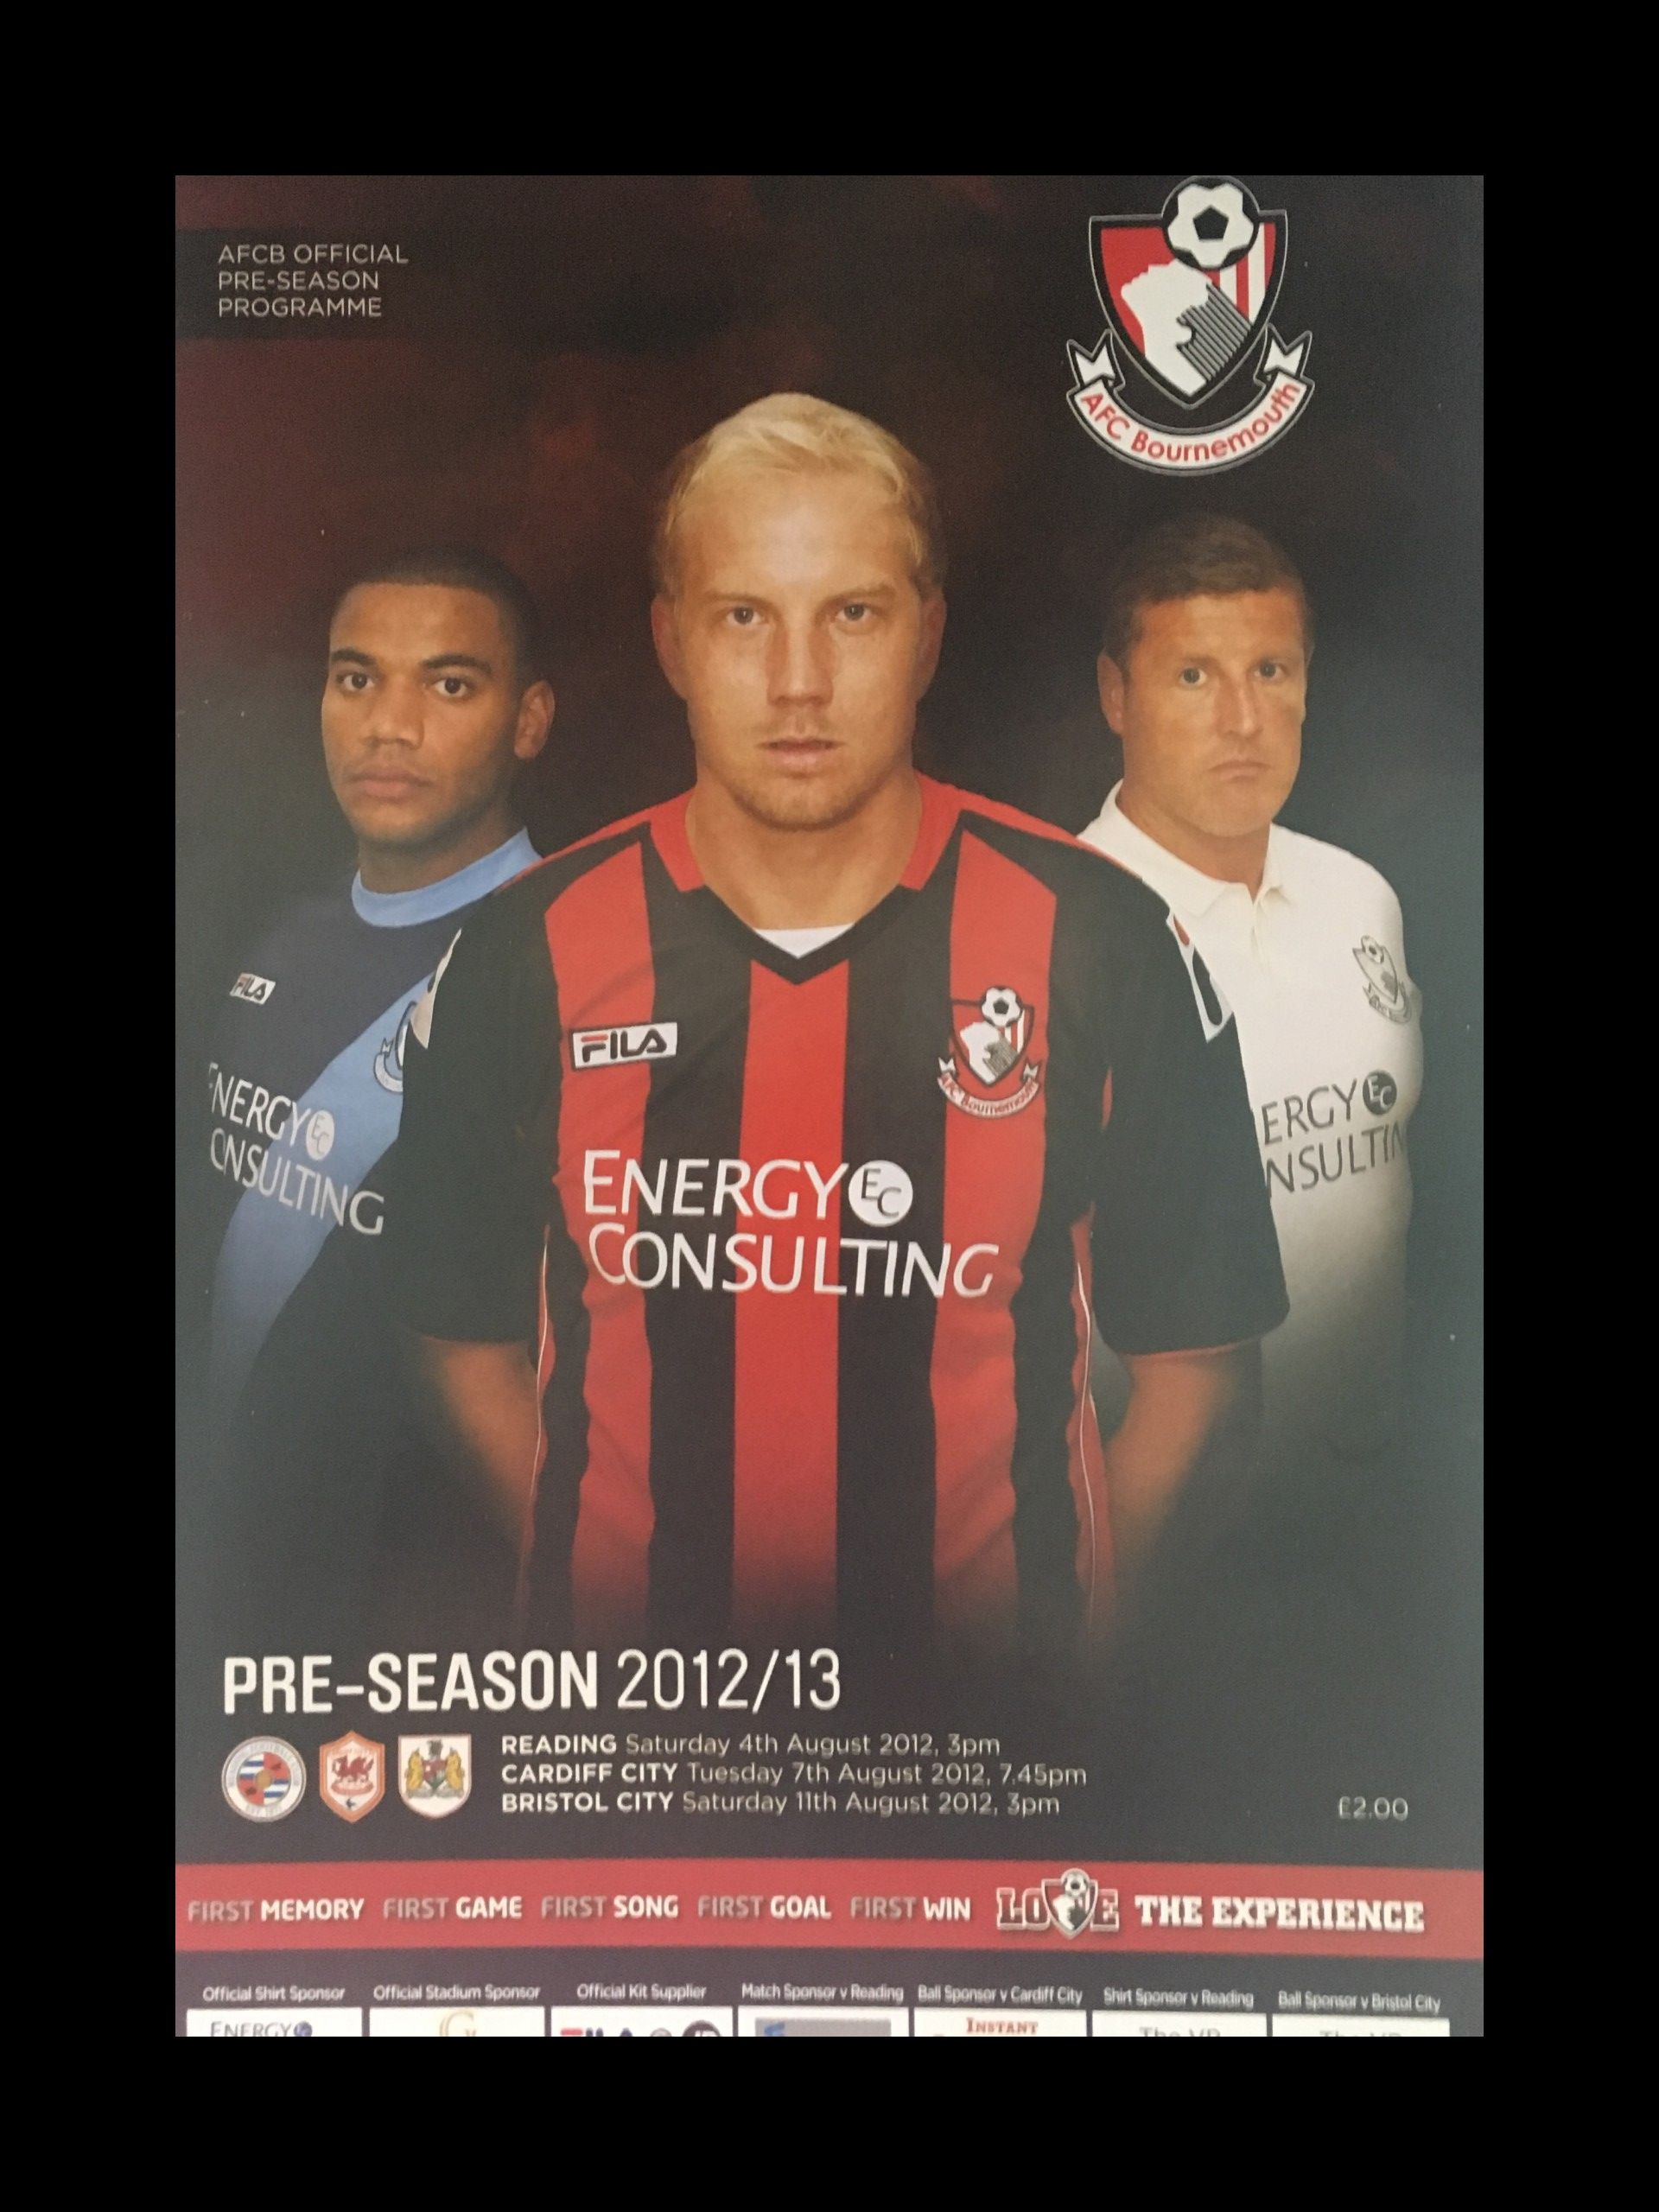 AFC Bournemouth v Bristol City 11-08-2012 Programme